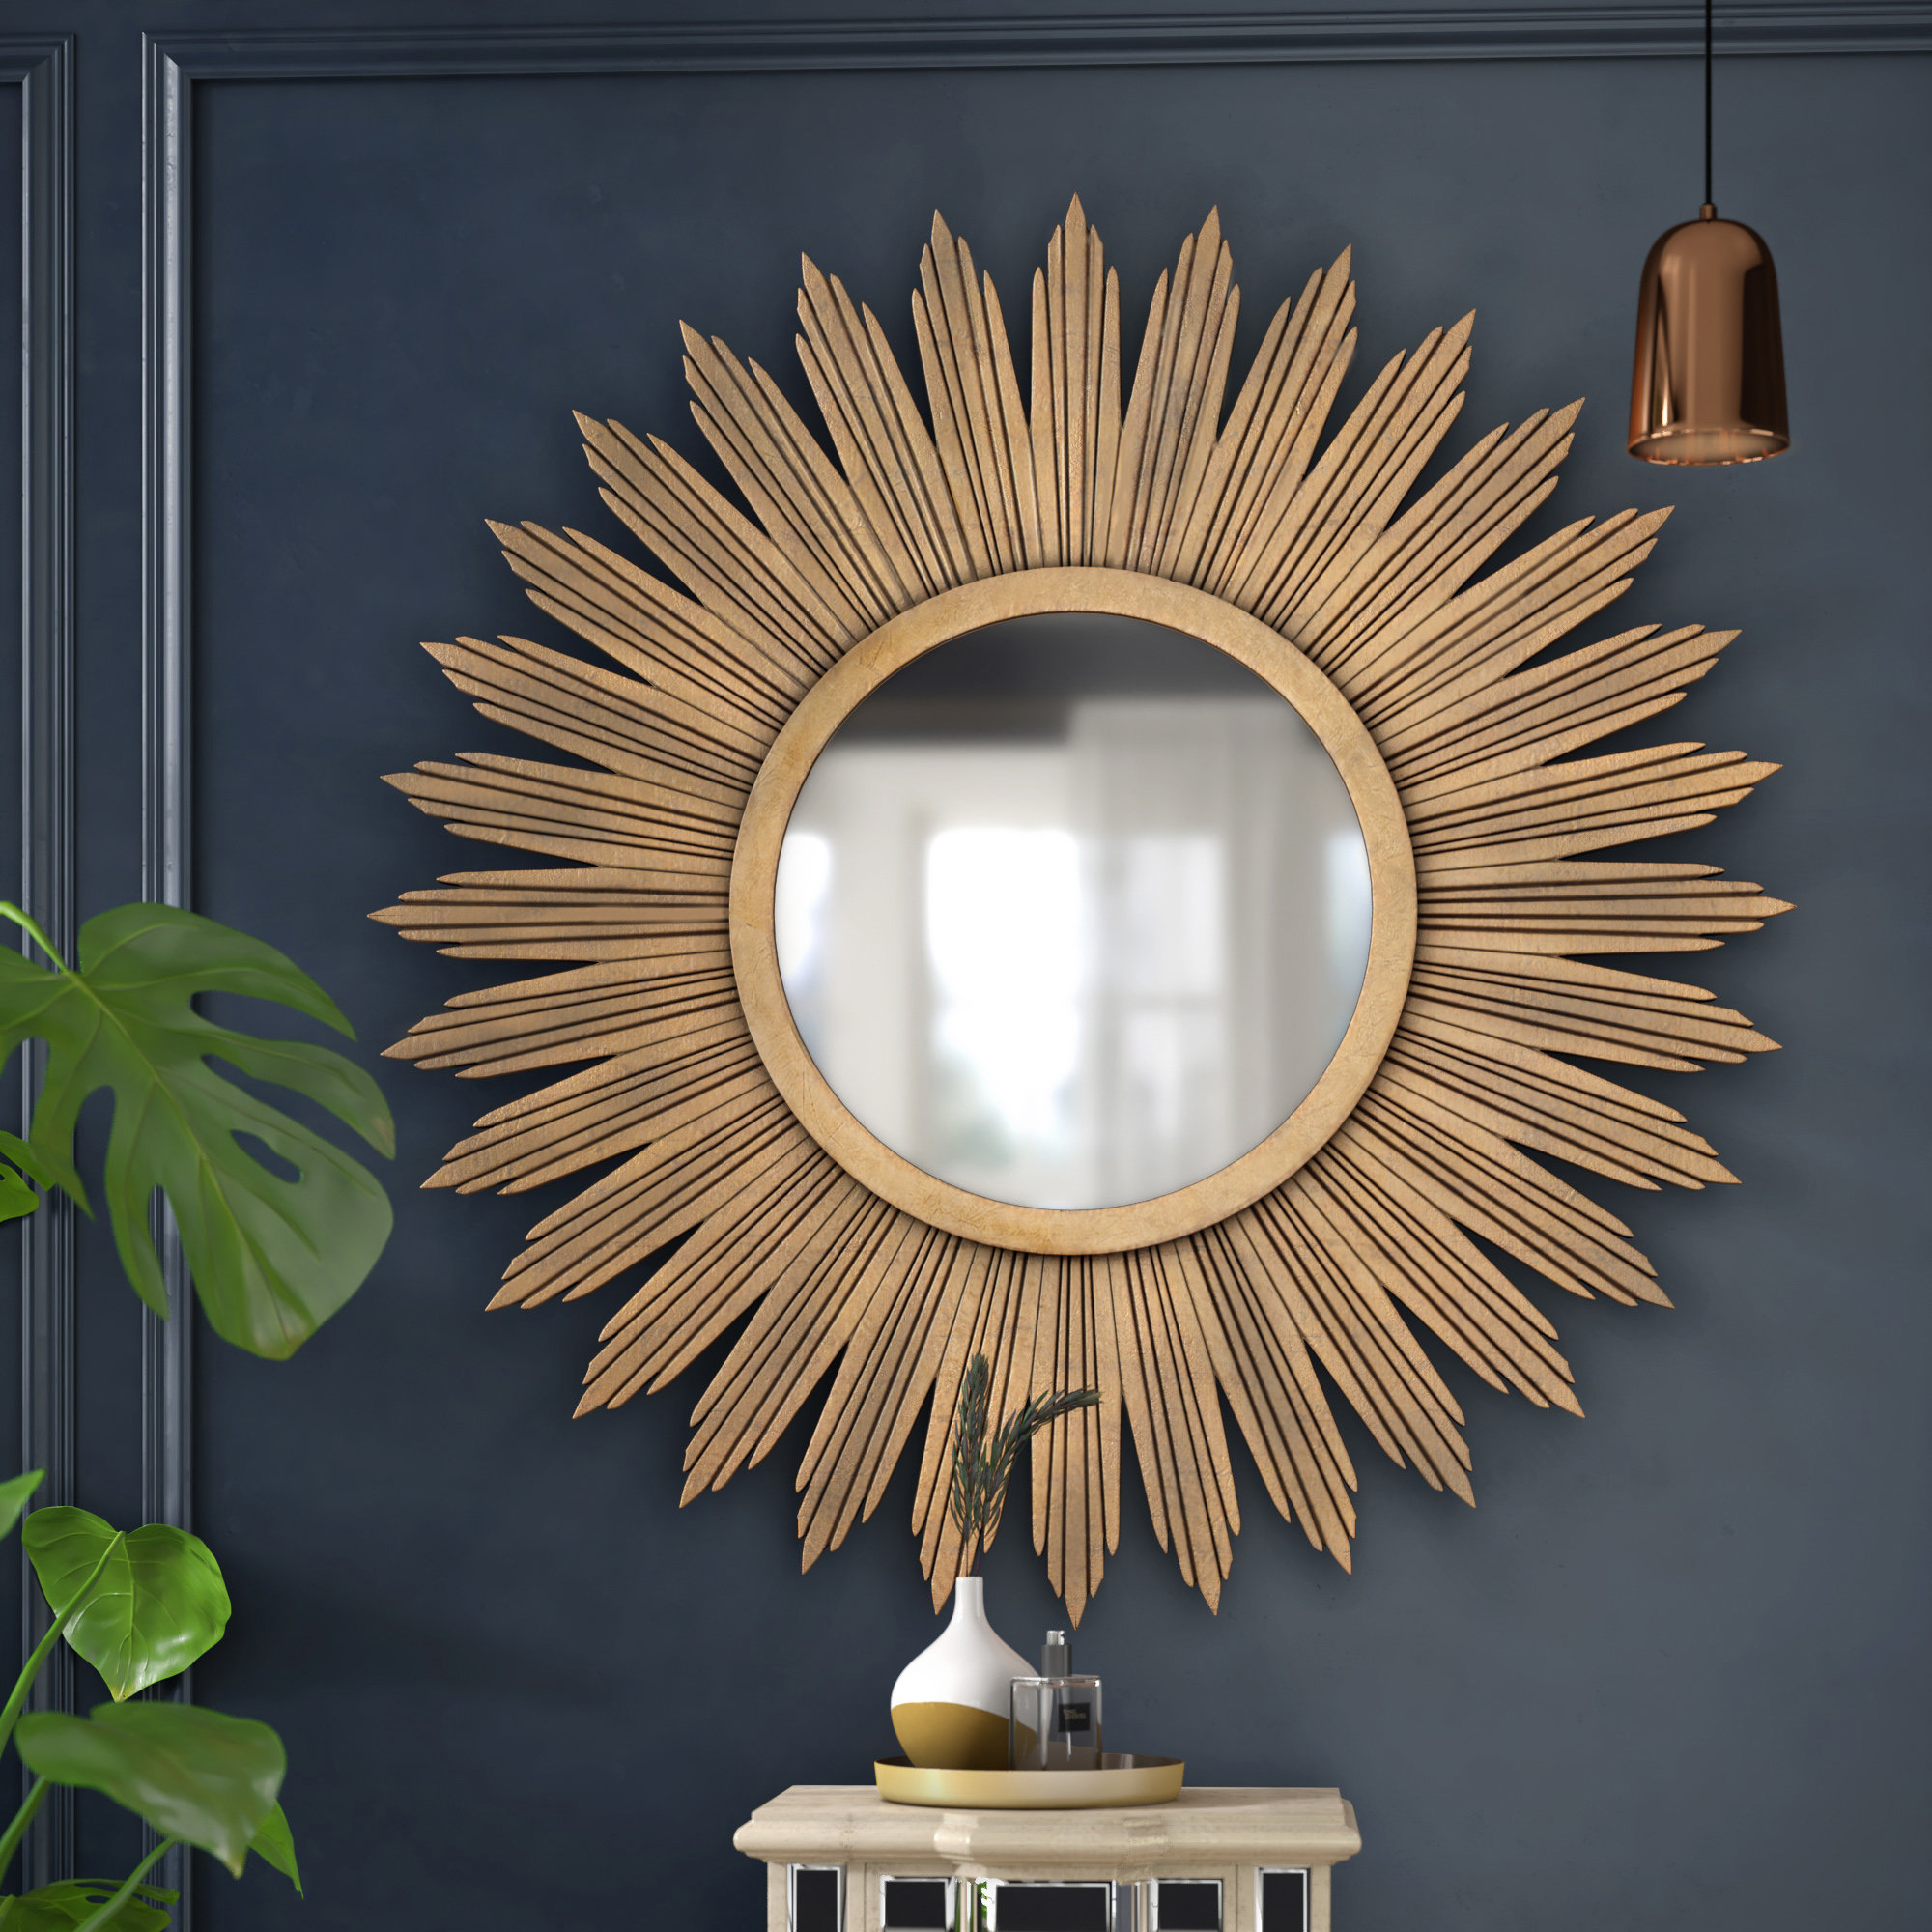 Aged Gold Wall Décor Modern & Contemporary Wall Mirror Inside Starburst Wall Decor By Willa Arlo Interiors (View 12 of 30)